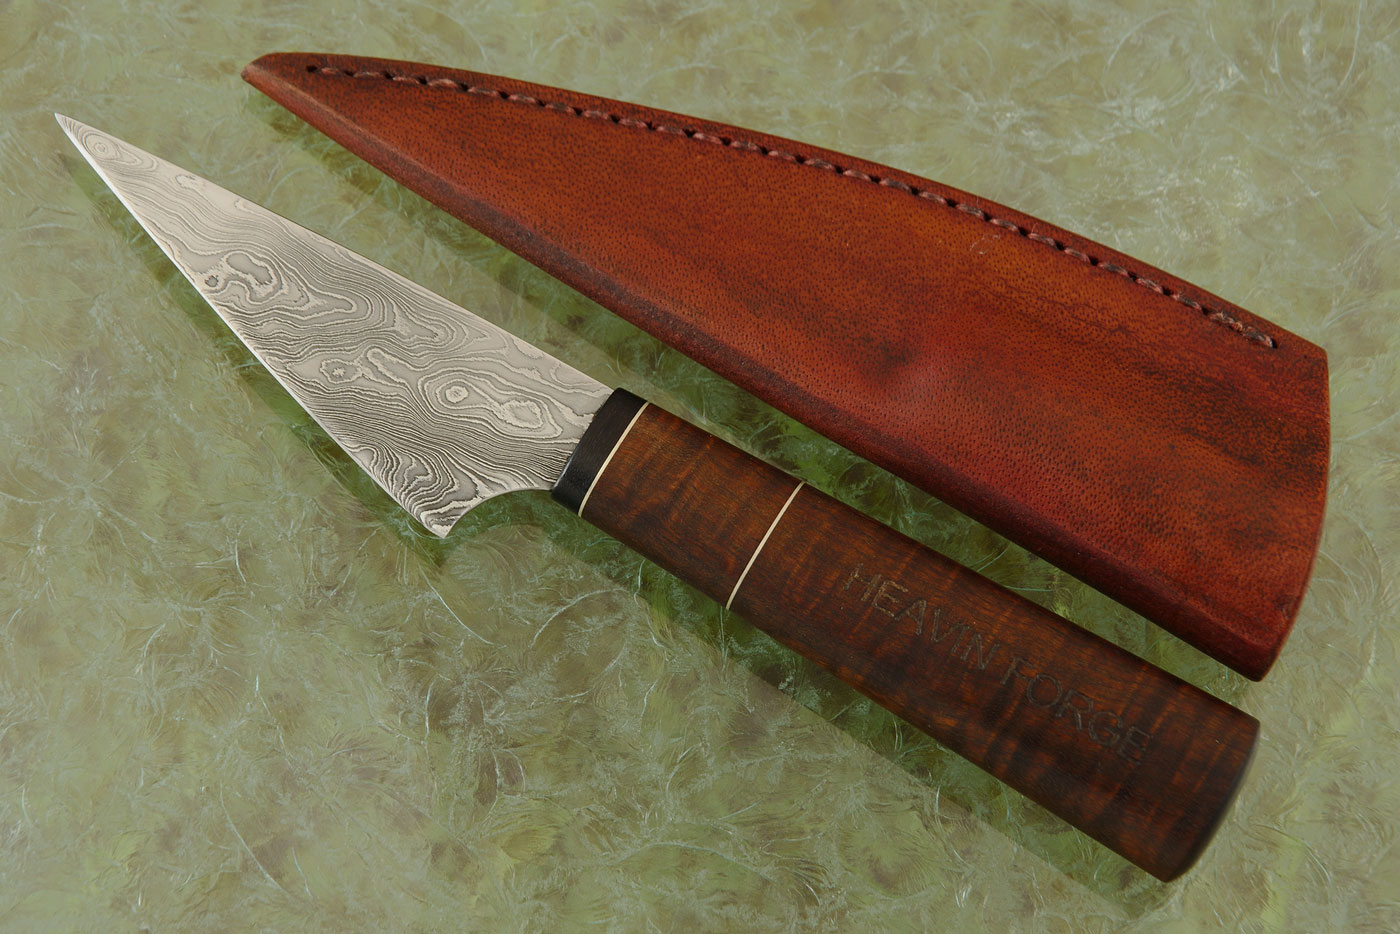 Sukikaki Kiridashi with Ringed Gidgee